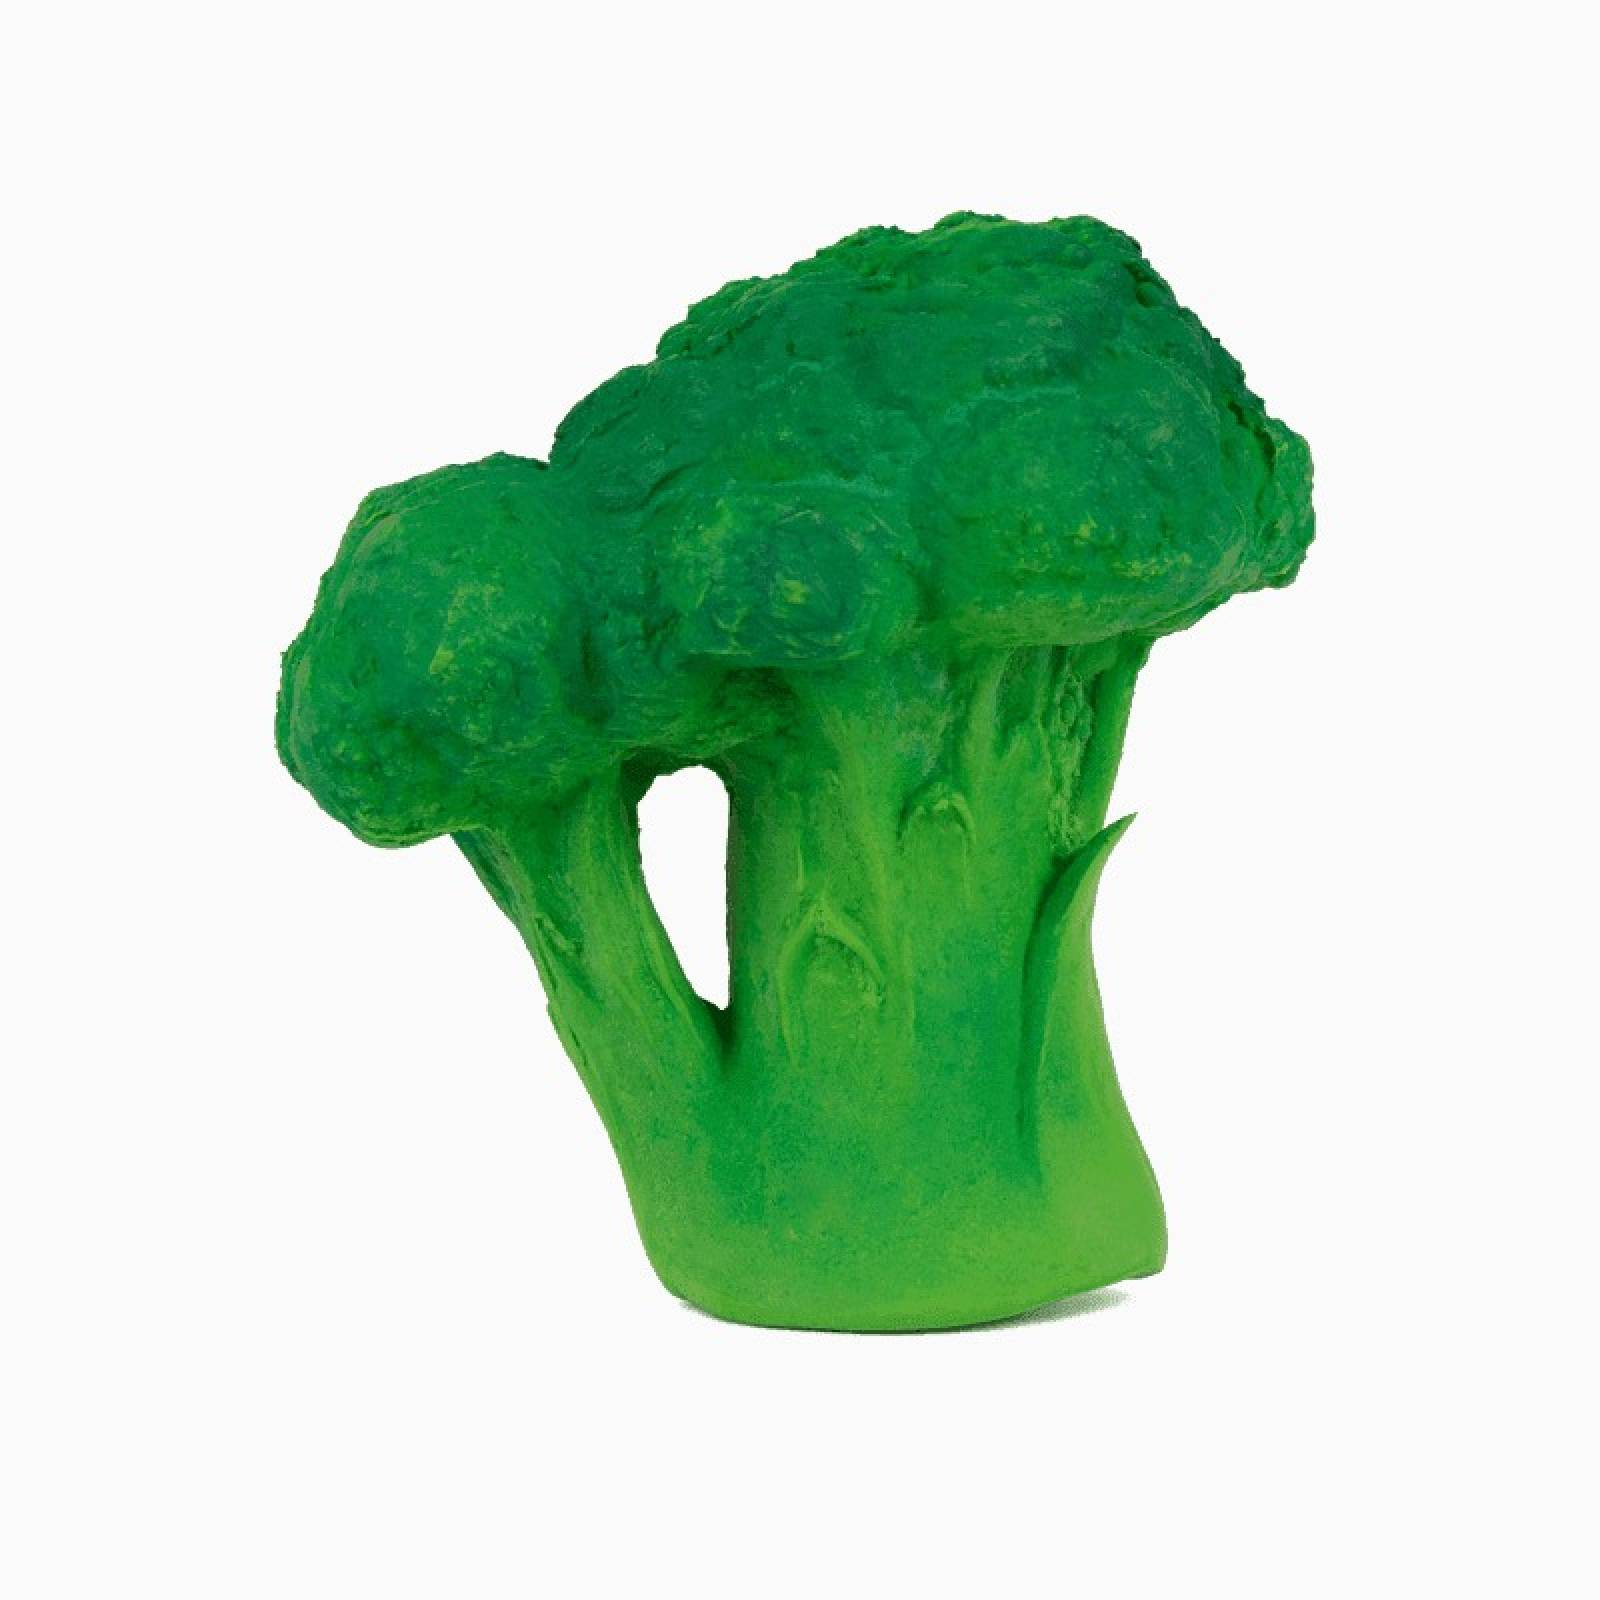 Brucy The Broccoli - Natural Rubber Teething Toy 0+ thumbnails